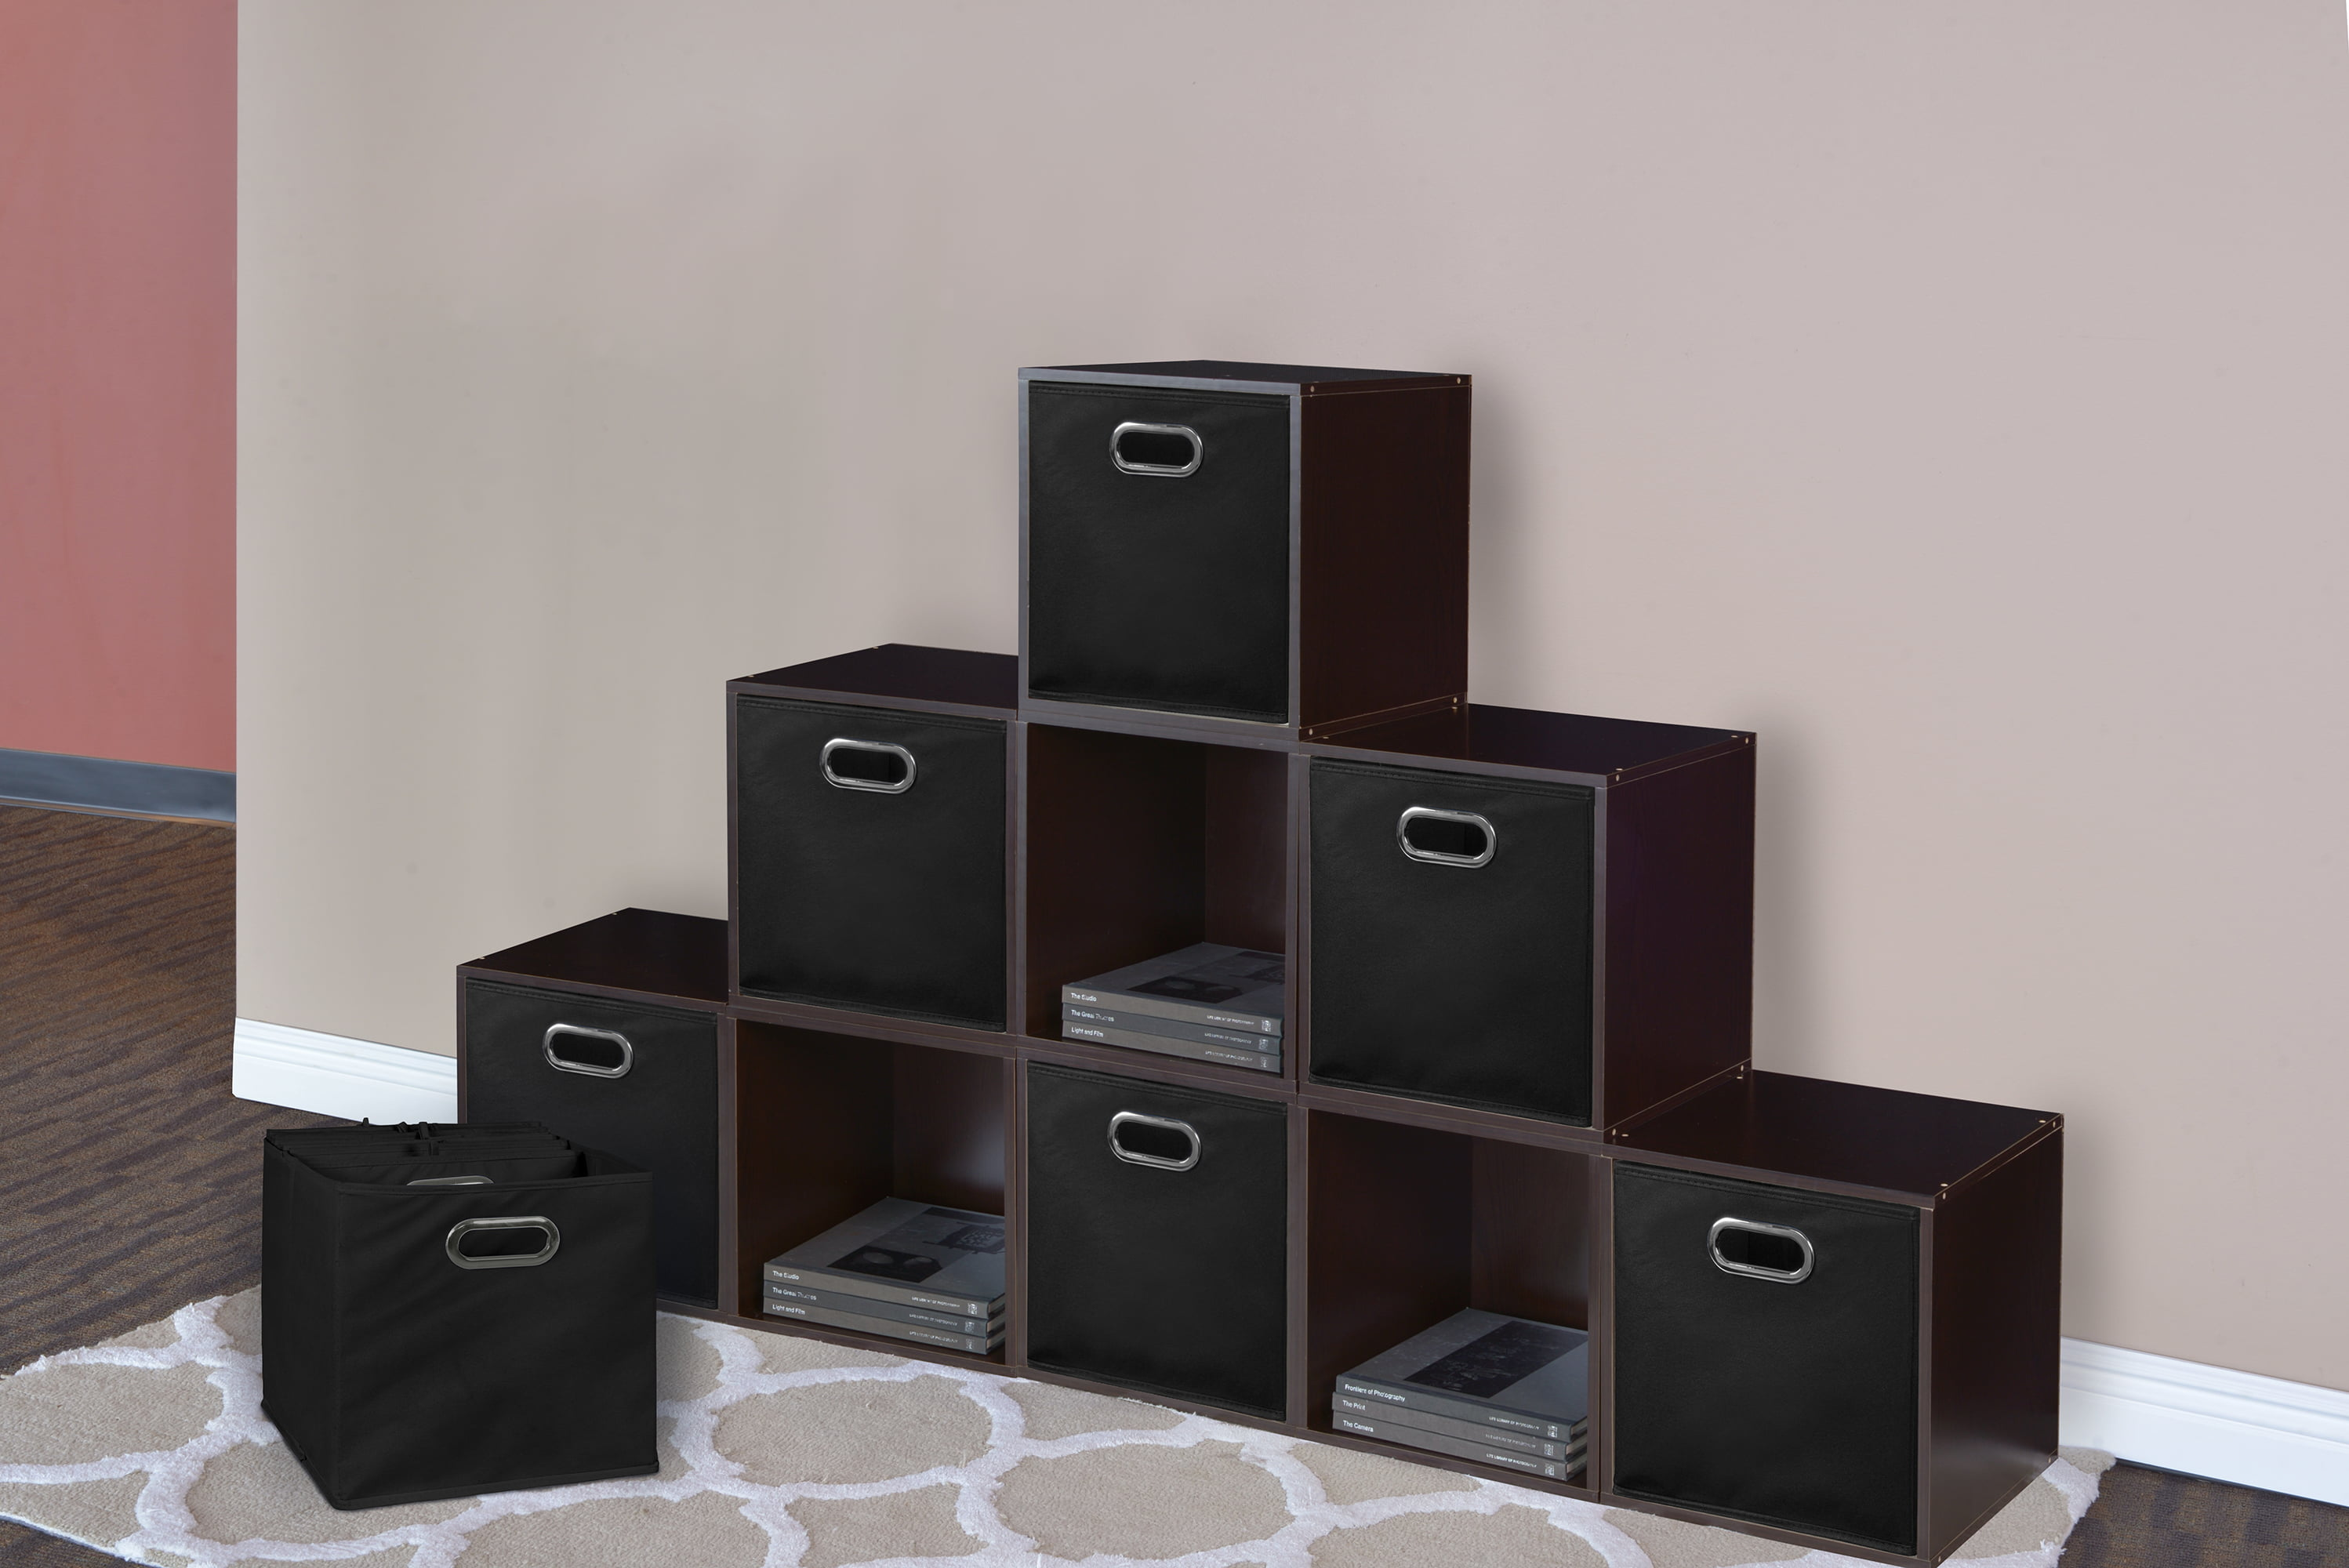 Click here to buy Niche Cubo Foldable Fabric Storage Bin, Set of 12 by Regency.